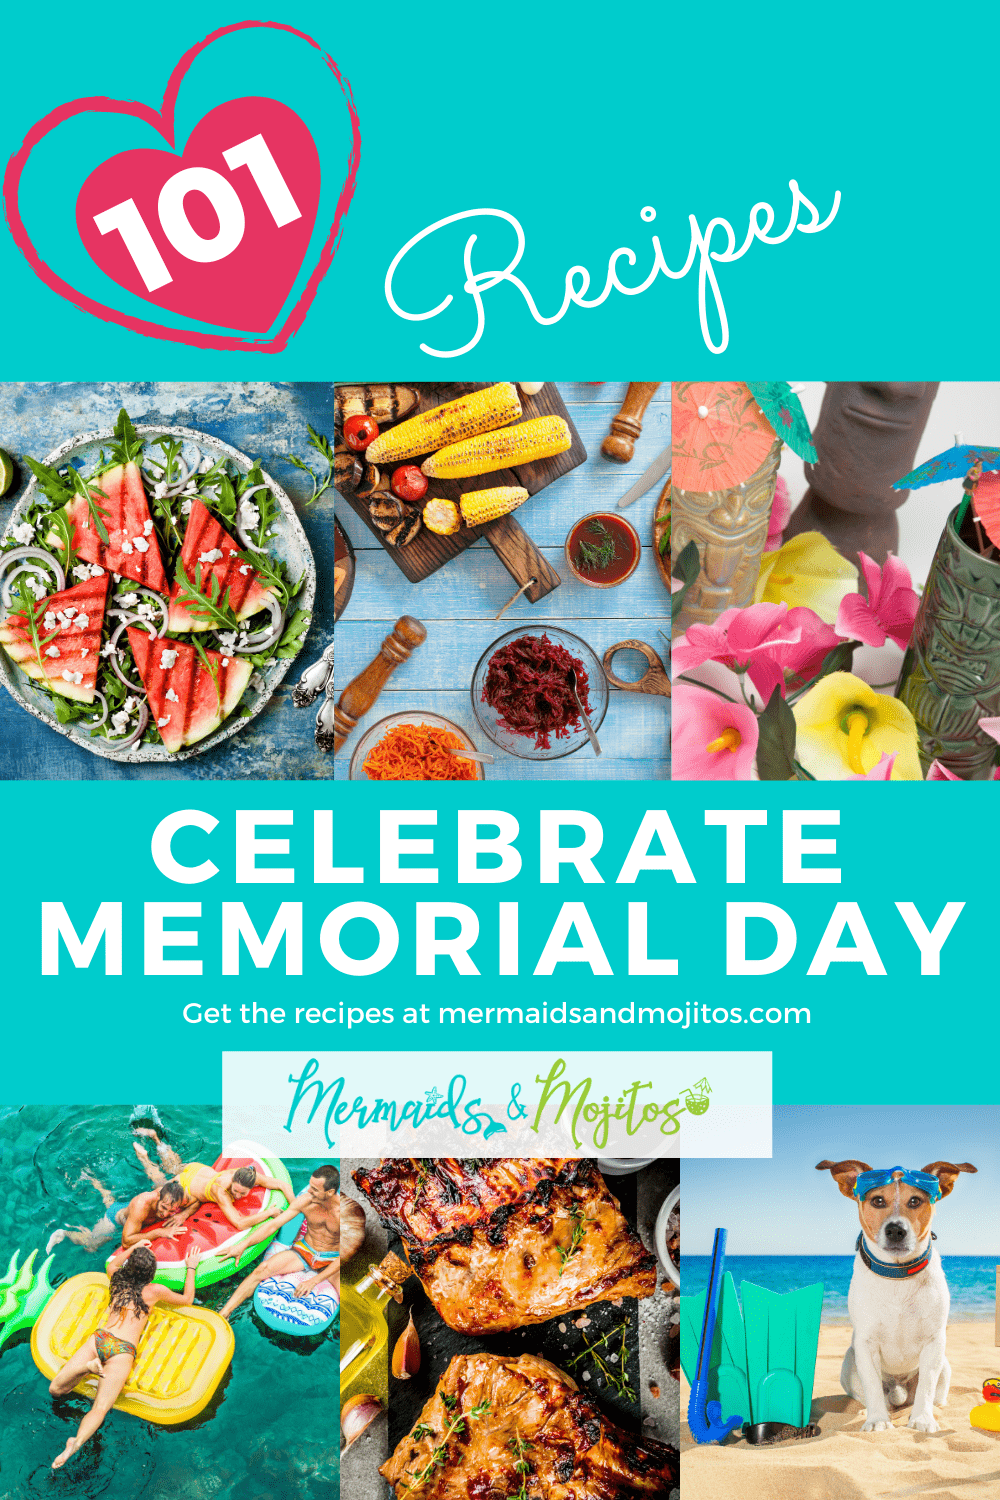 101 Easy Recipes for the Perfect Memorial Day Celebration. Celebrate Memorial Day with easy stress-free recipes and barbecue ideas.  Celebrate the American Spirit - the Land of the Brave Because We are the Home of the Brave. via @mermaidsandmojitos